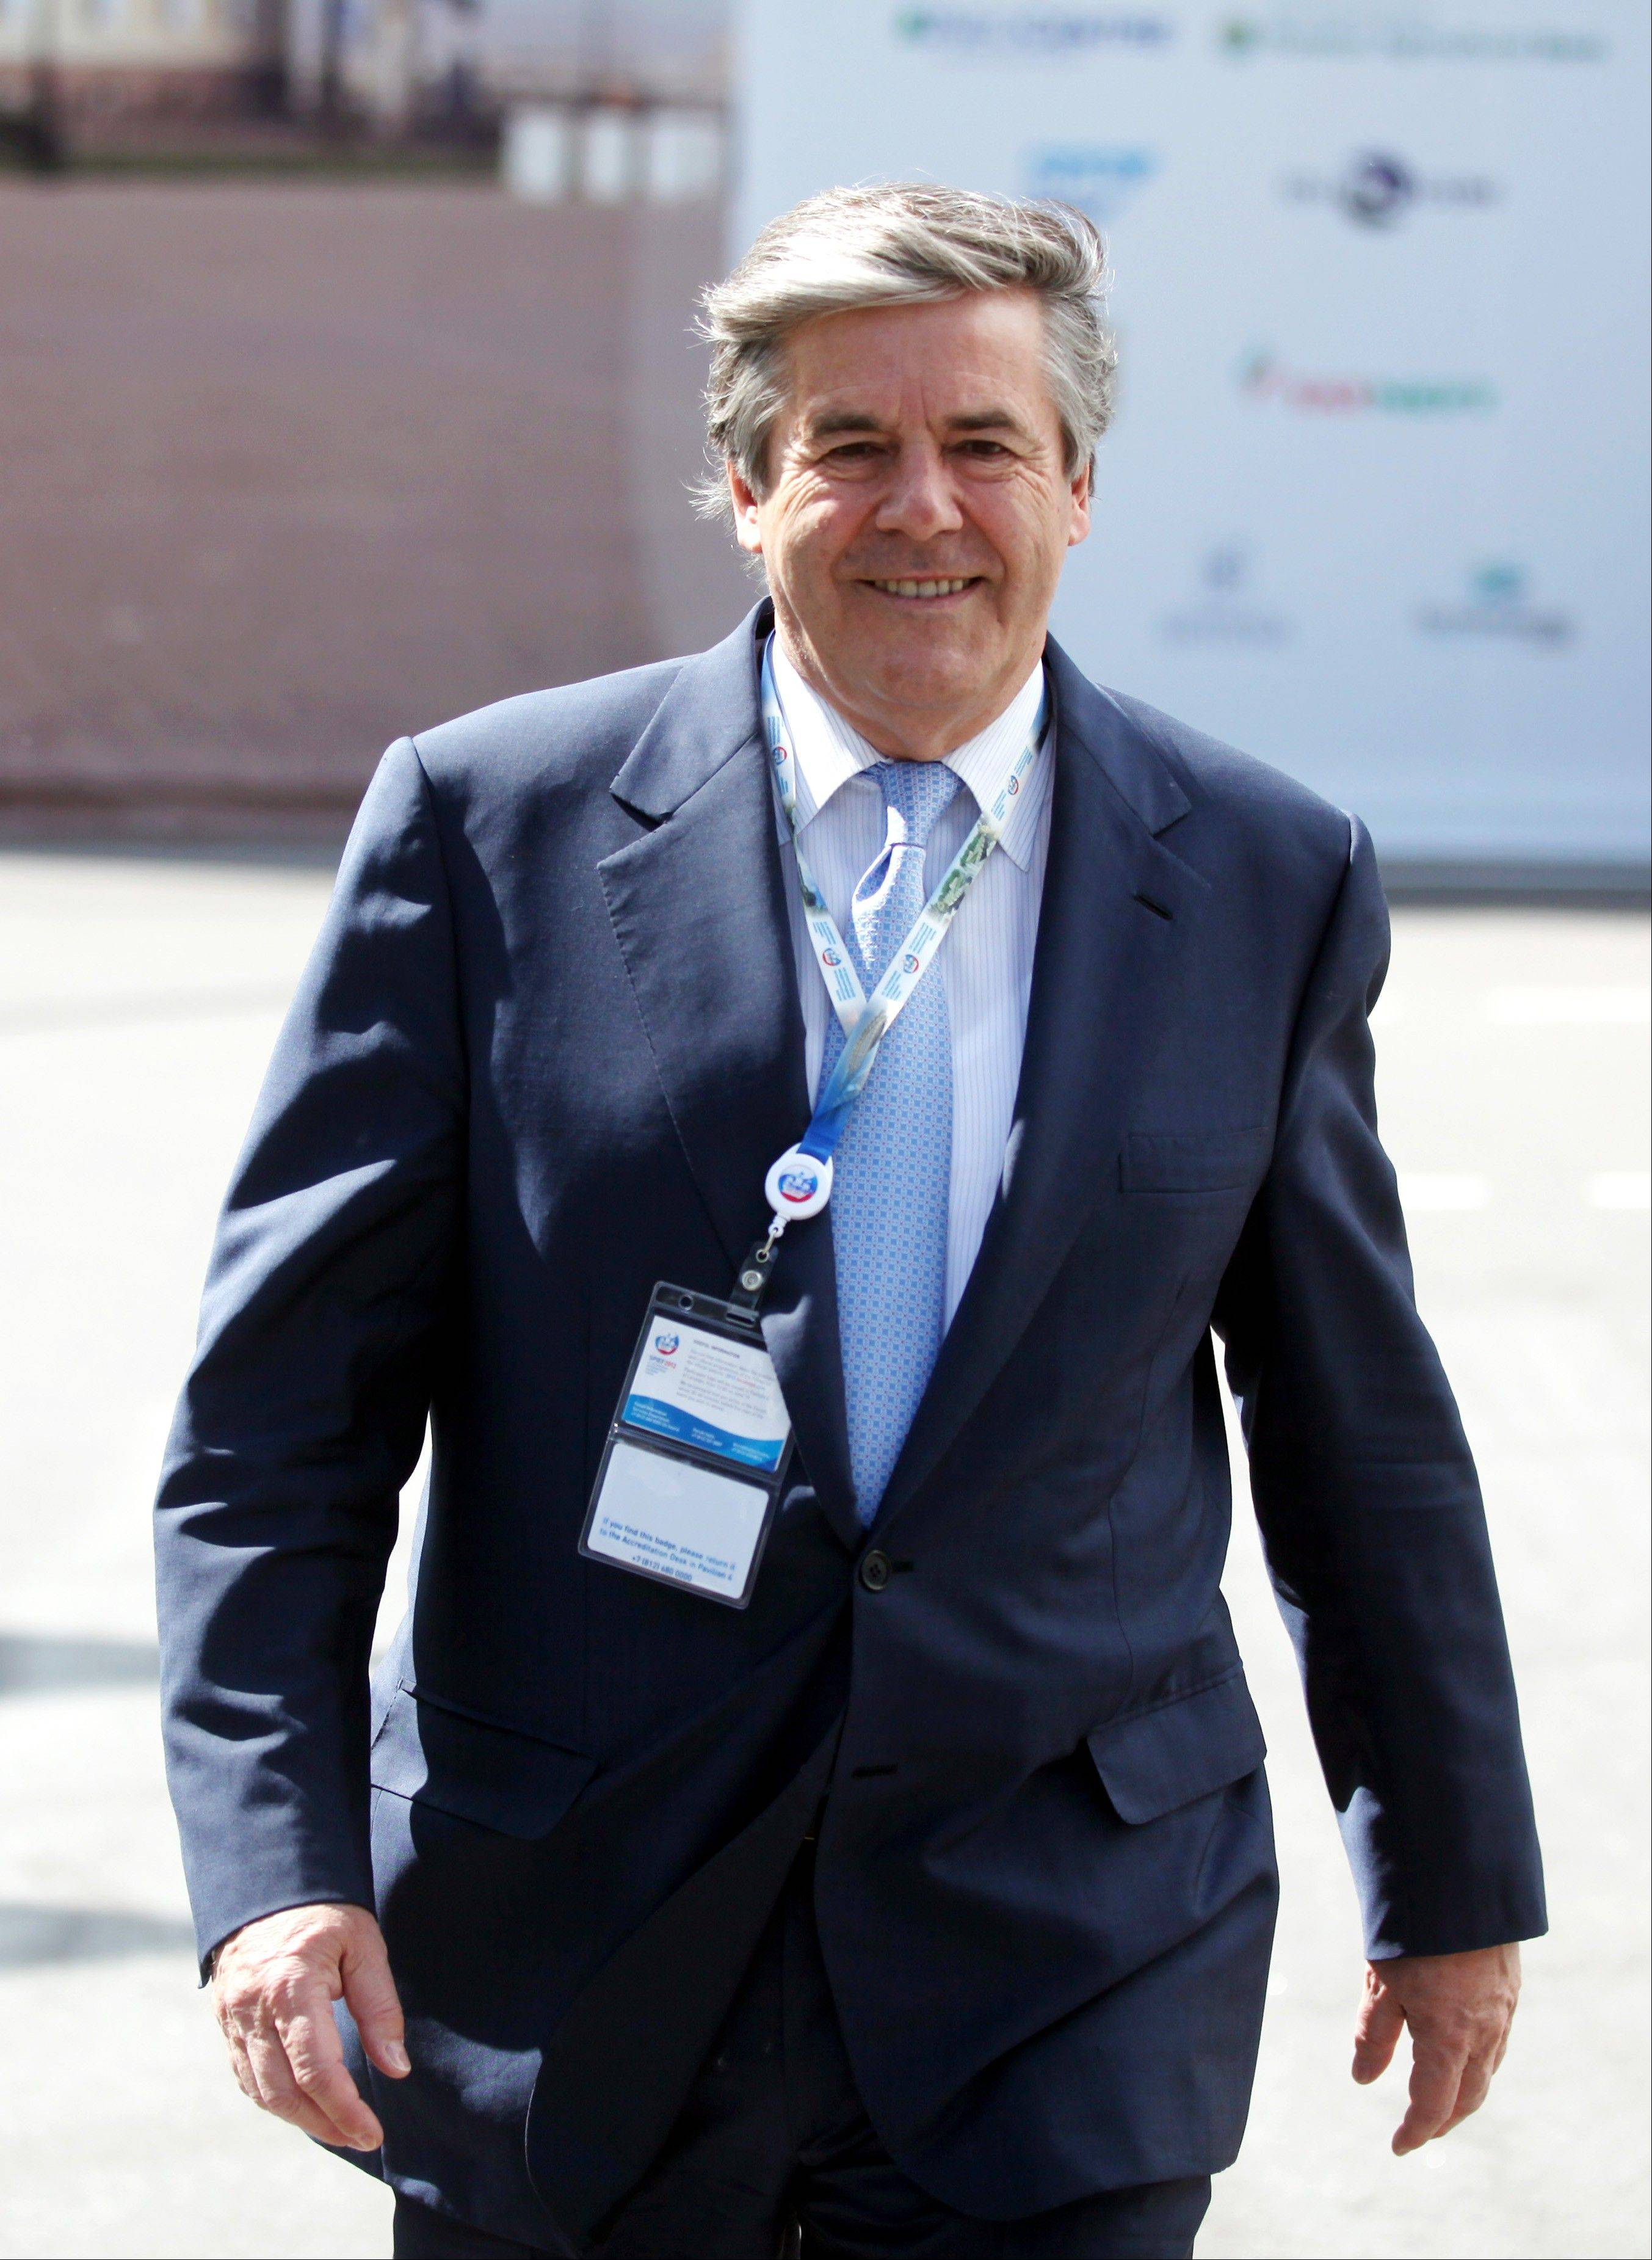 Josef Ackermann, the former chief executive officer of Deutsche Bank AG, walks between conference sessions on day three of the Saint Petersburg International Economic Forum 2012.